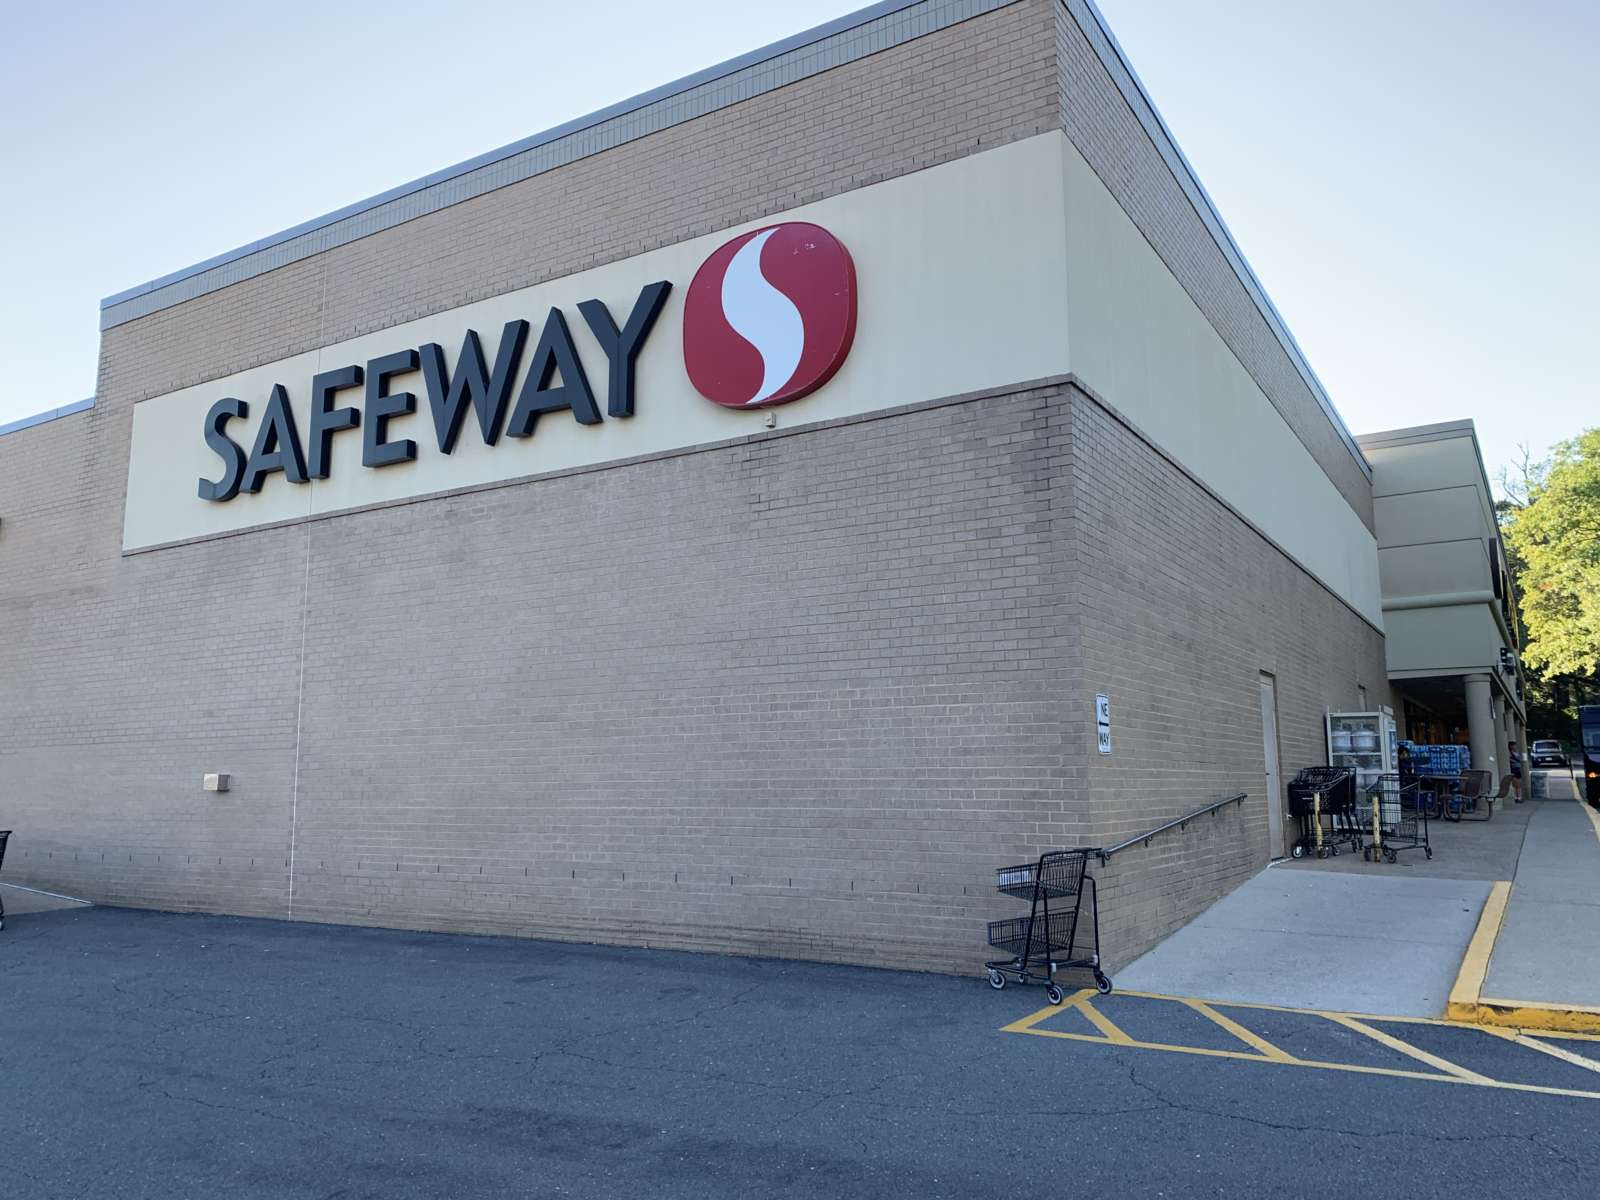 Arlington Safeway Stores Are Offering Vaccine Appointments - ARLnow